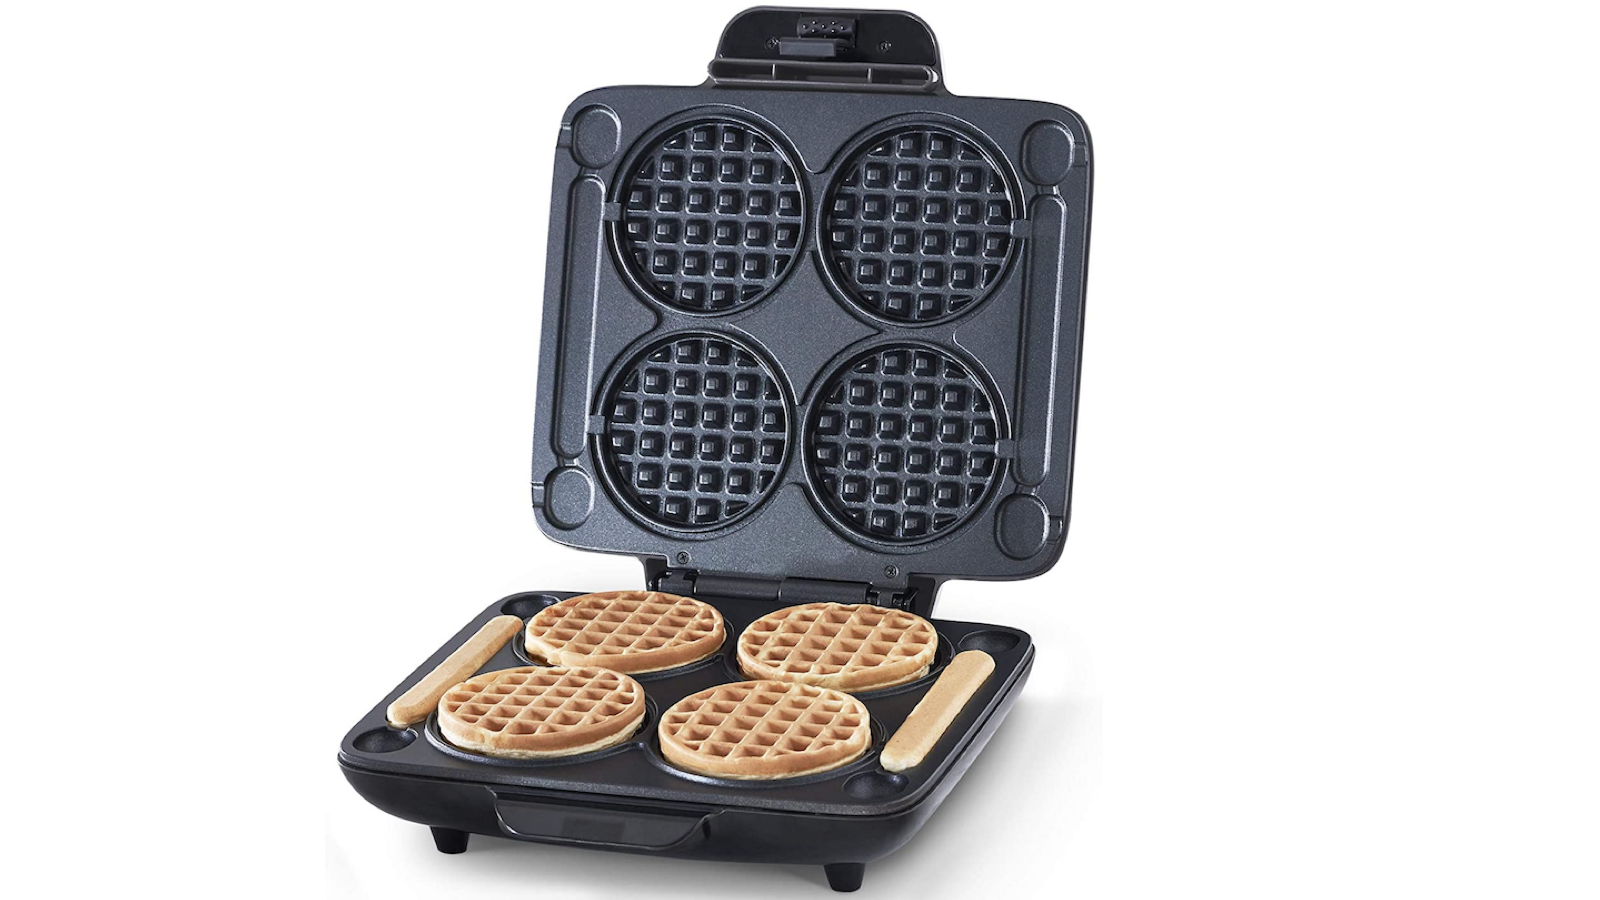 square black waffle maker with four waffles cavities and two long side slots